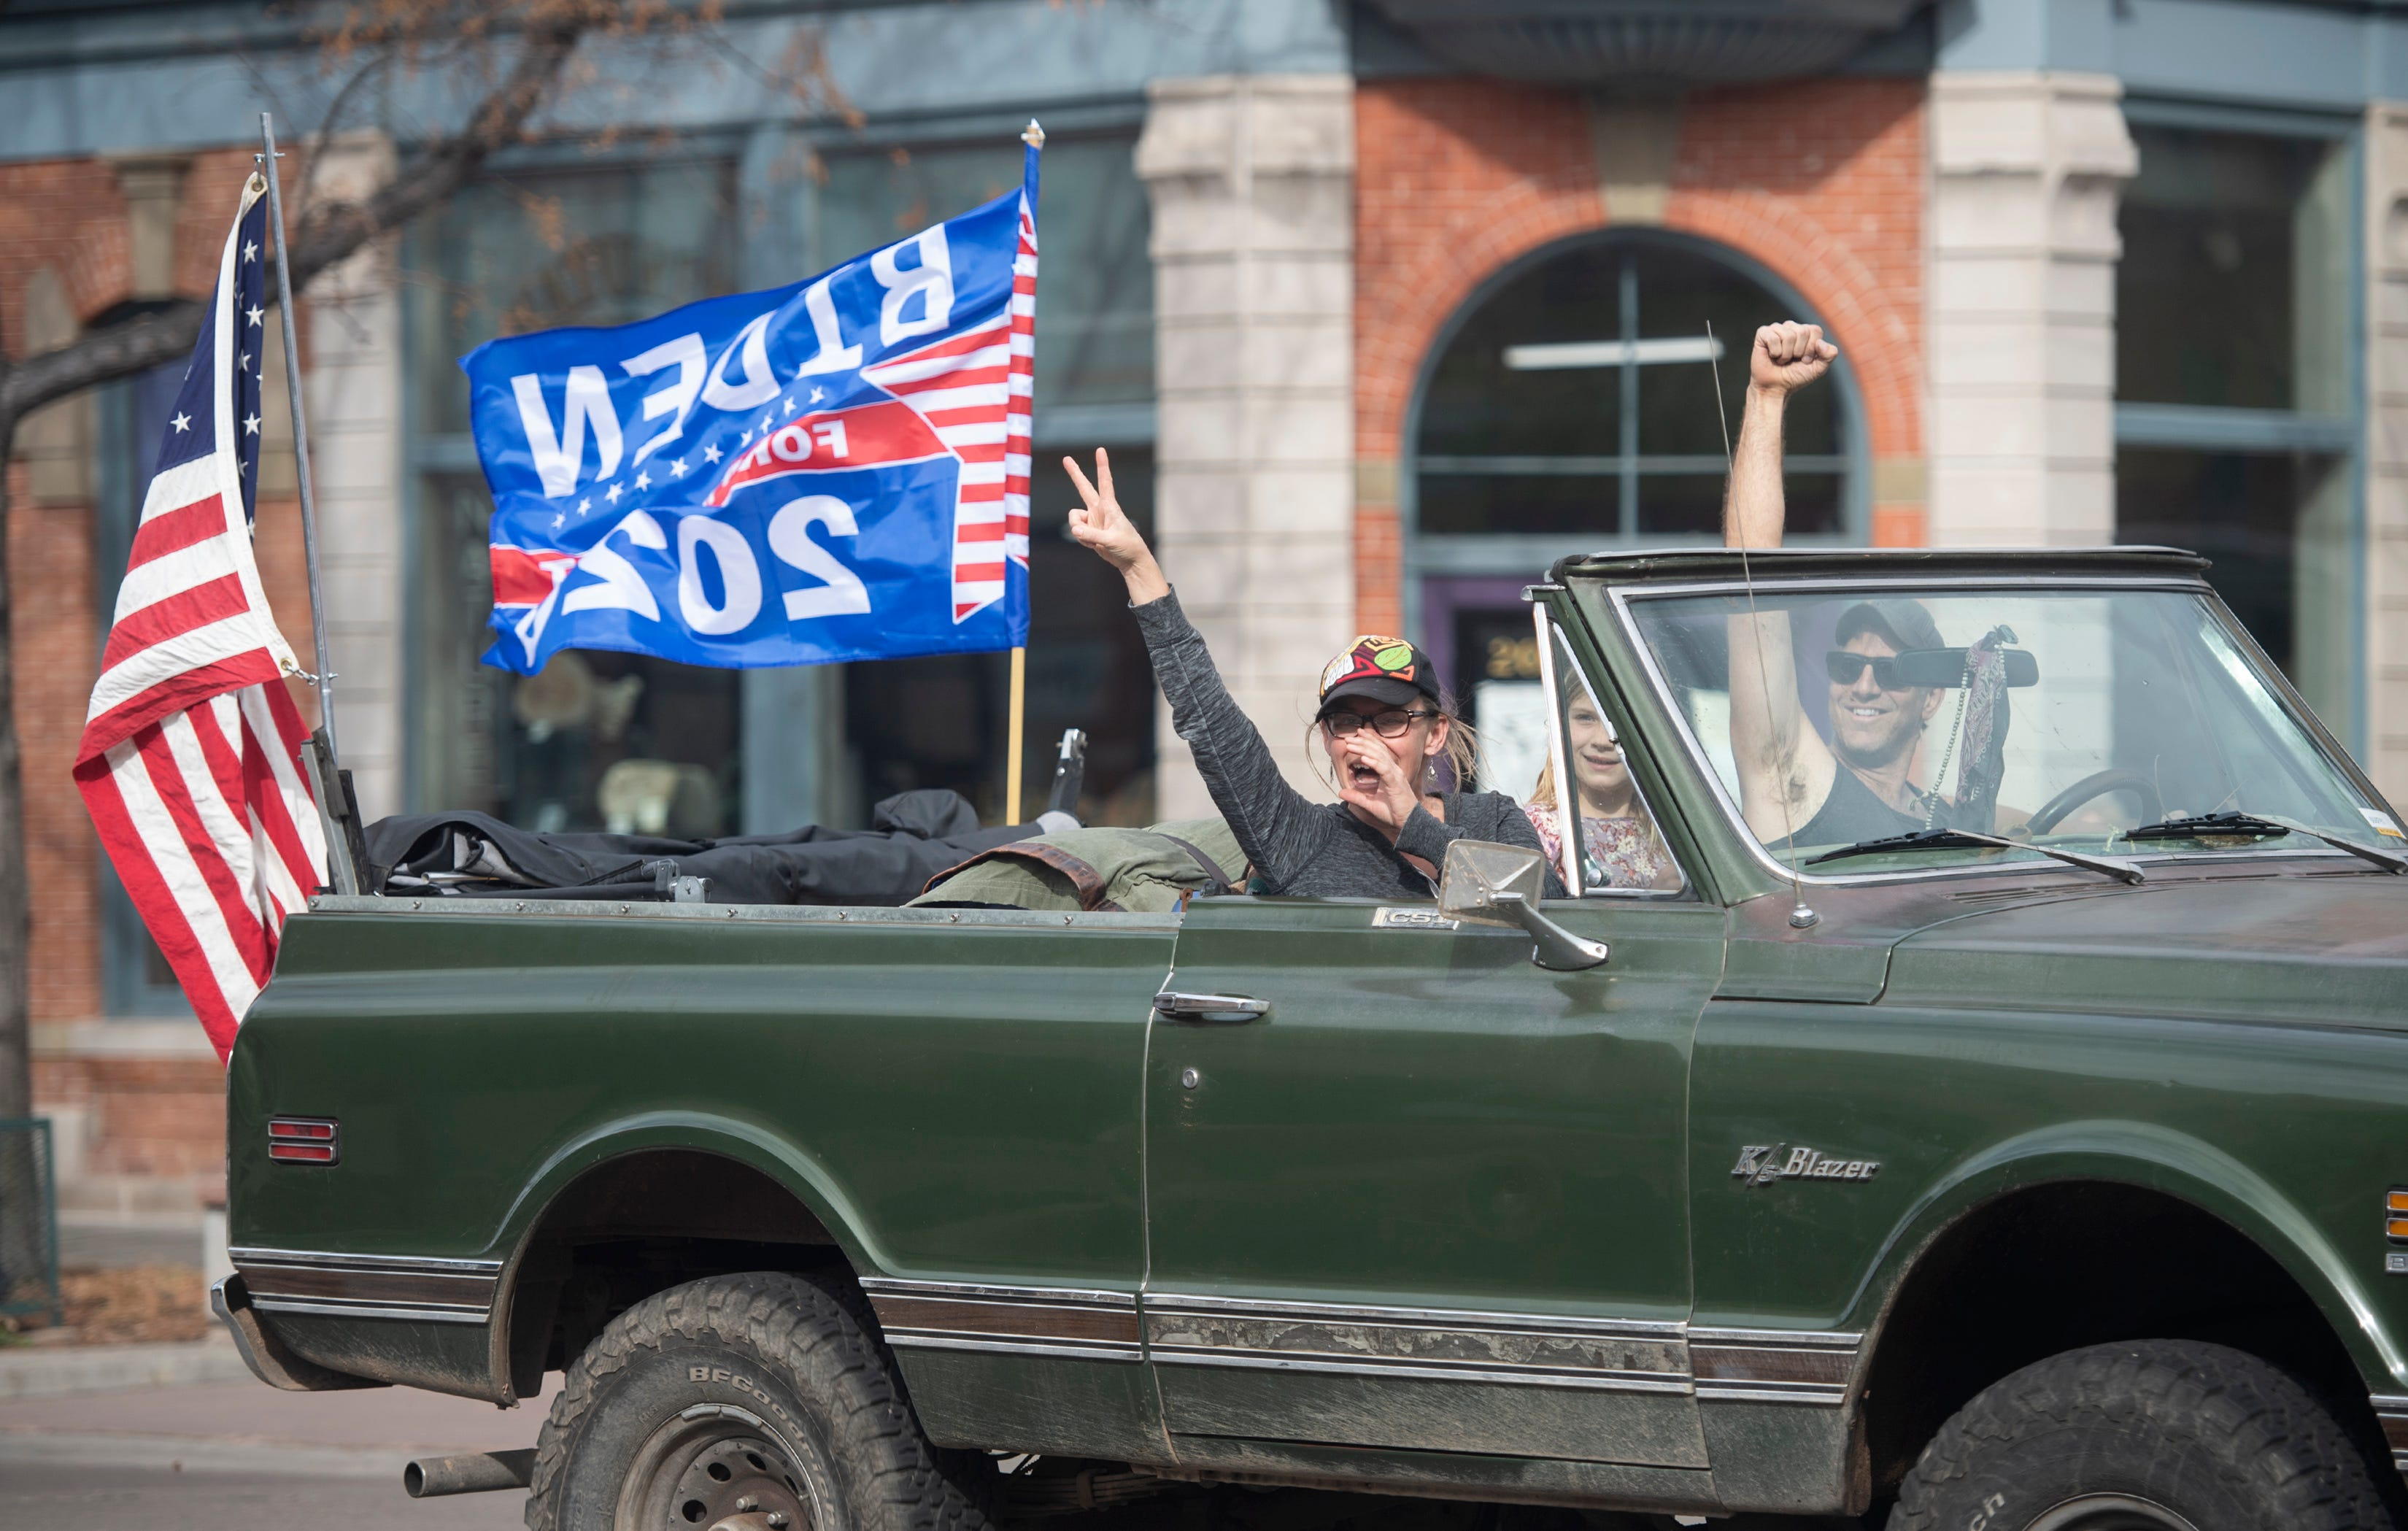 People cheer from their vehicle after Democratic candidate Joe Biden wins the 2020 presidential election in Old Town Fort Collins, Colo.